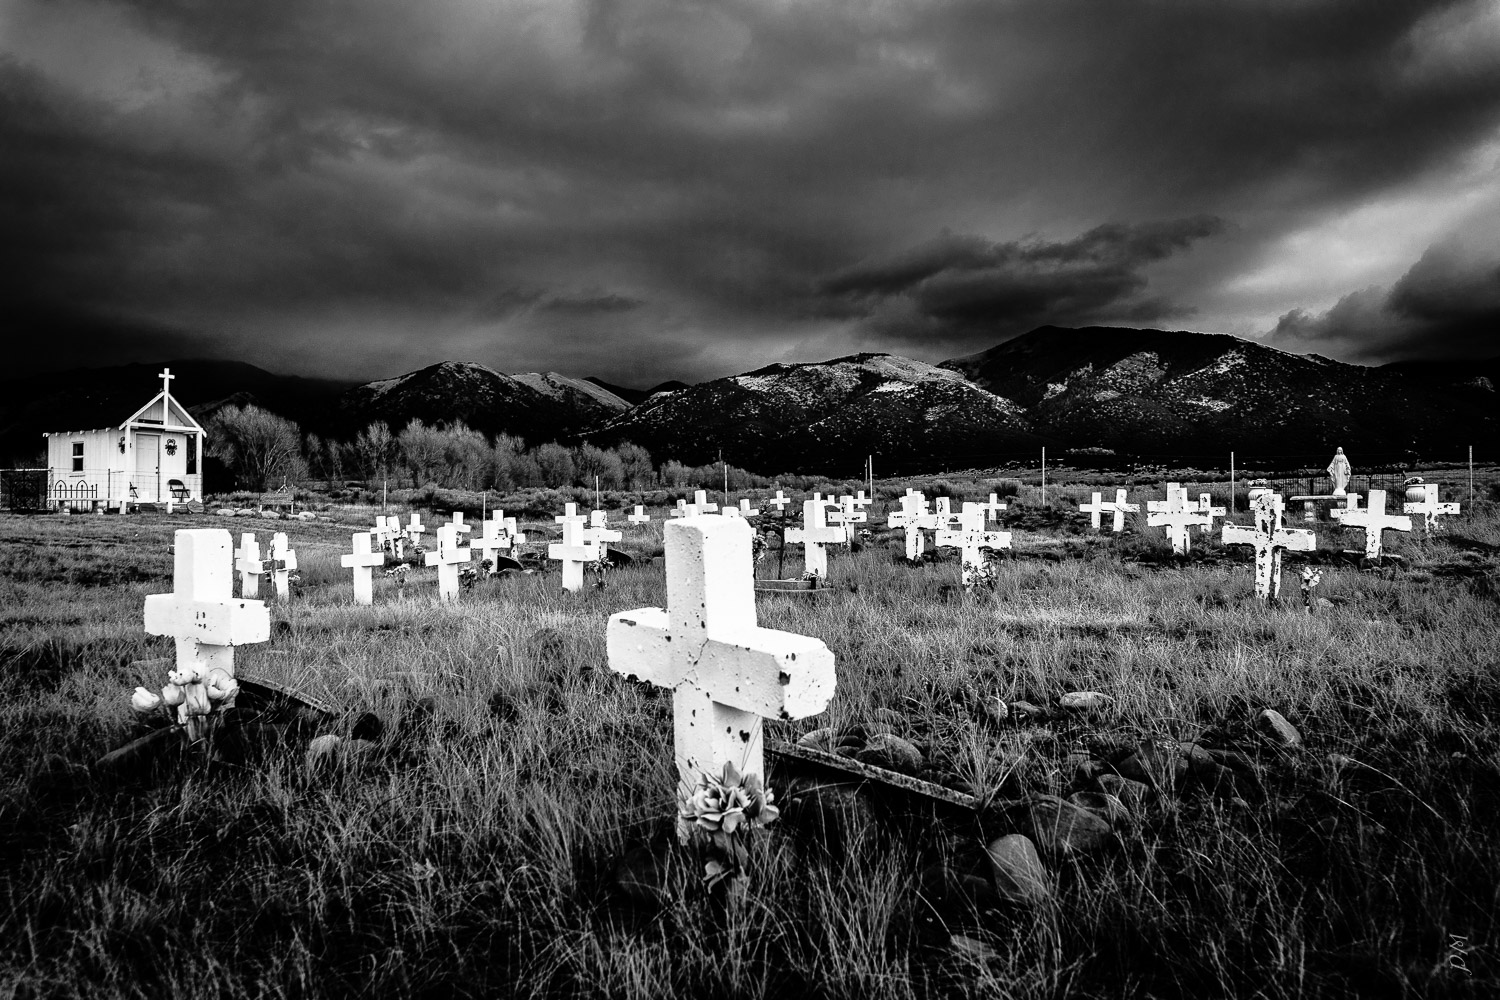 Found this very remote cemetery in the San Luis Valley, Colorado after a storm - really struck me for a visual mood.